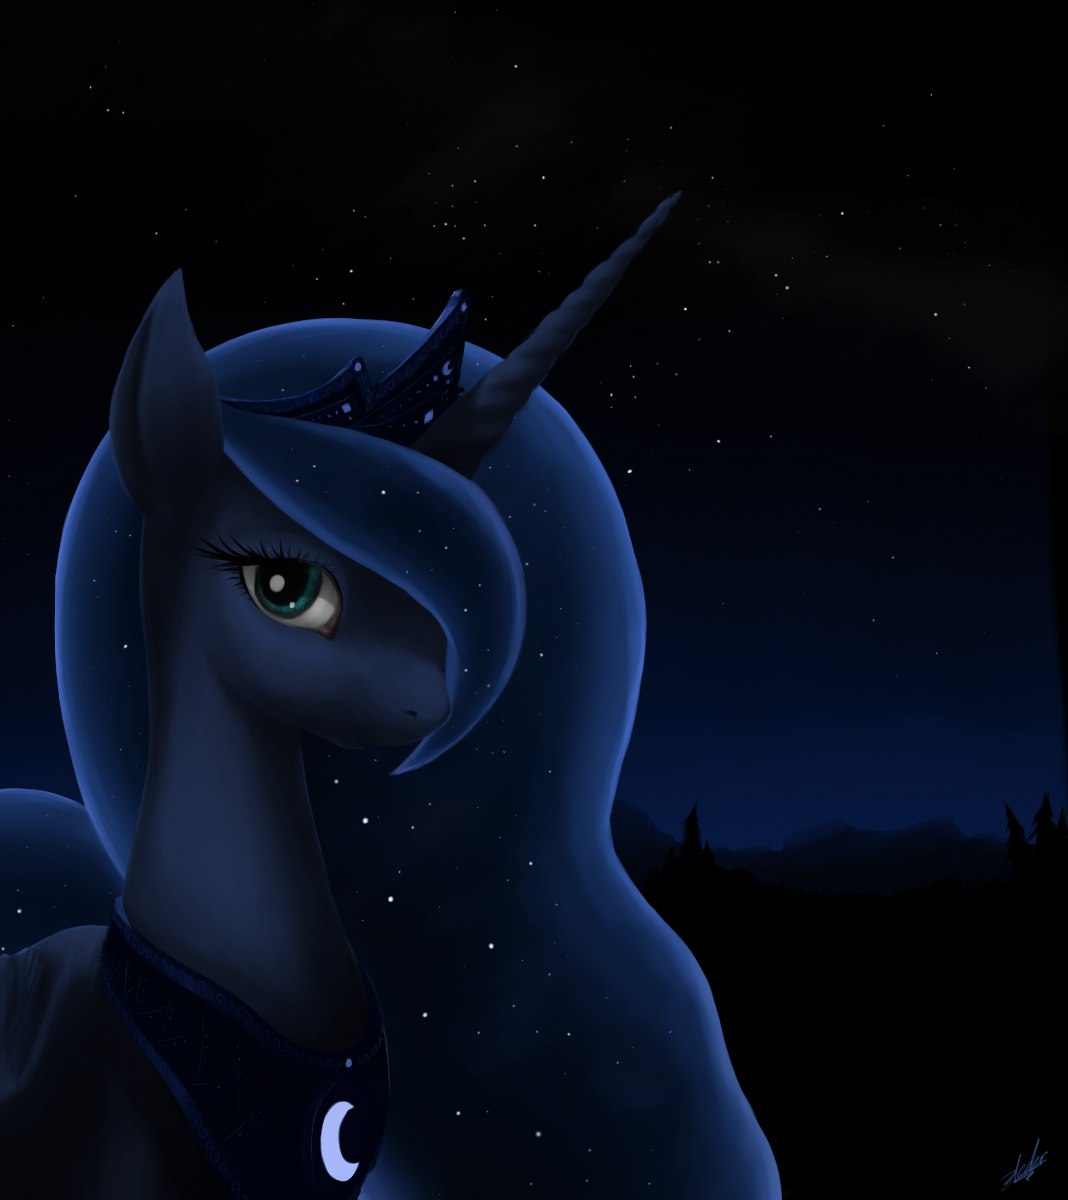 Princess Luna by zlack3r